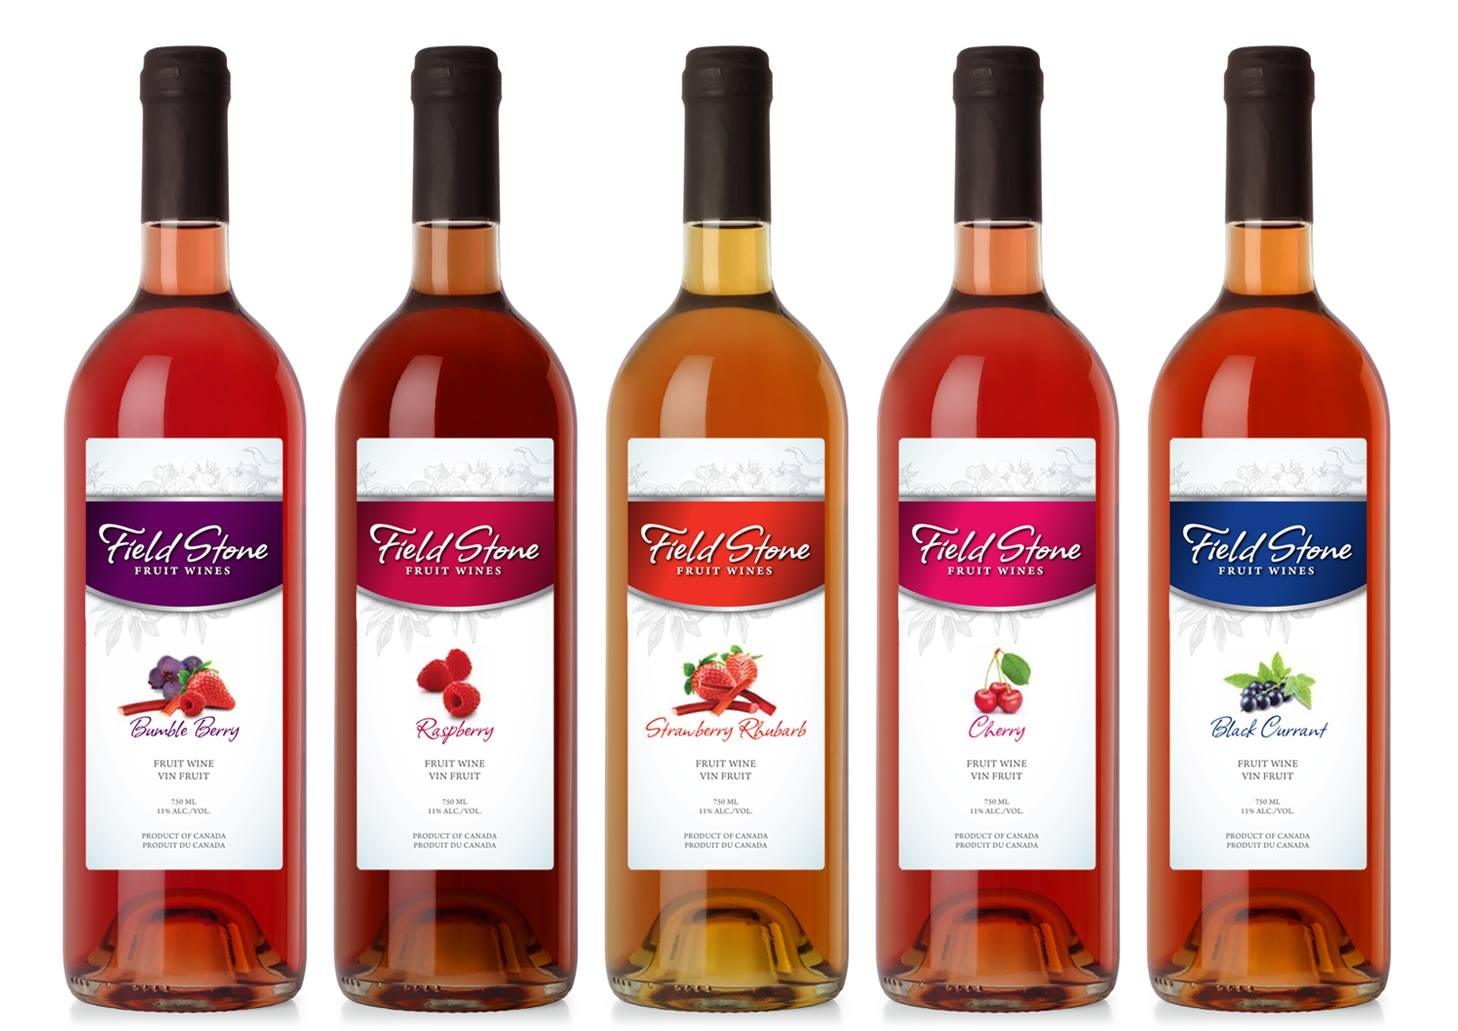 Image by: Field Stone Fruit Wines  | Just Wine